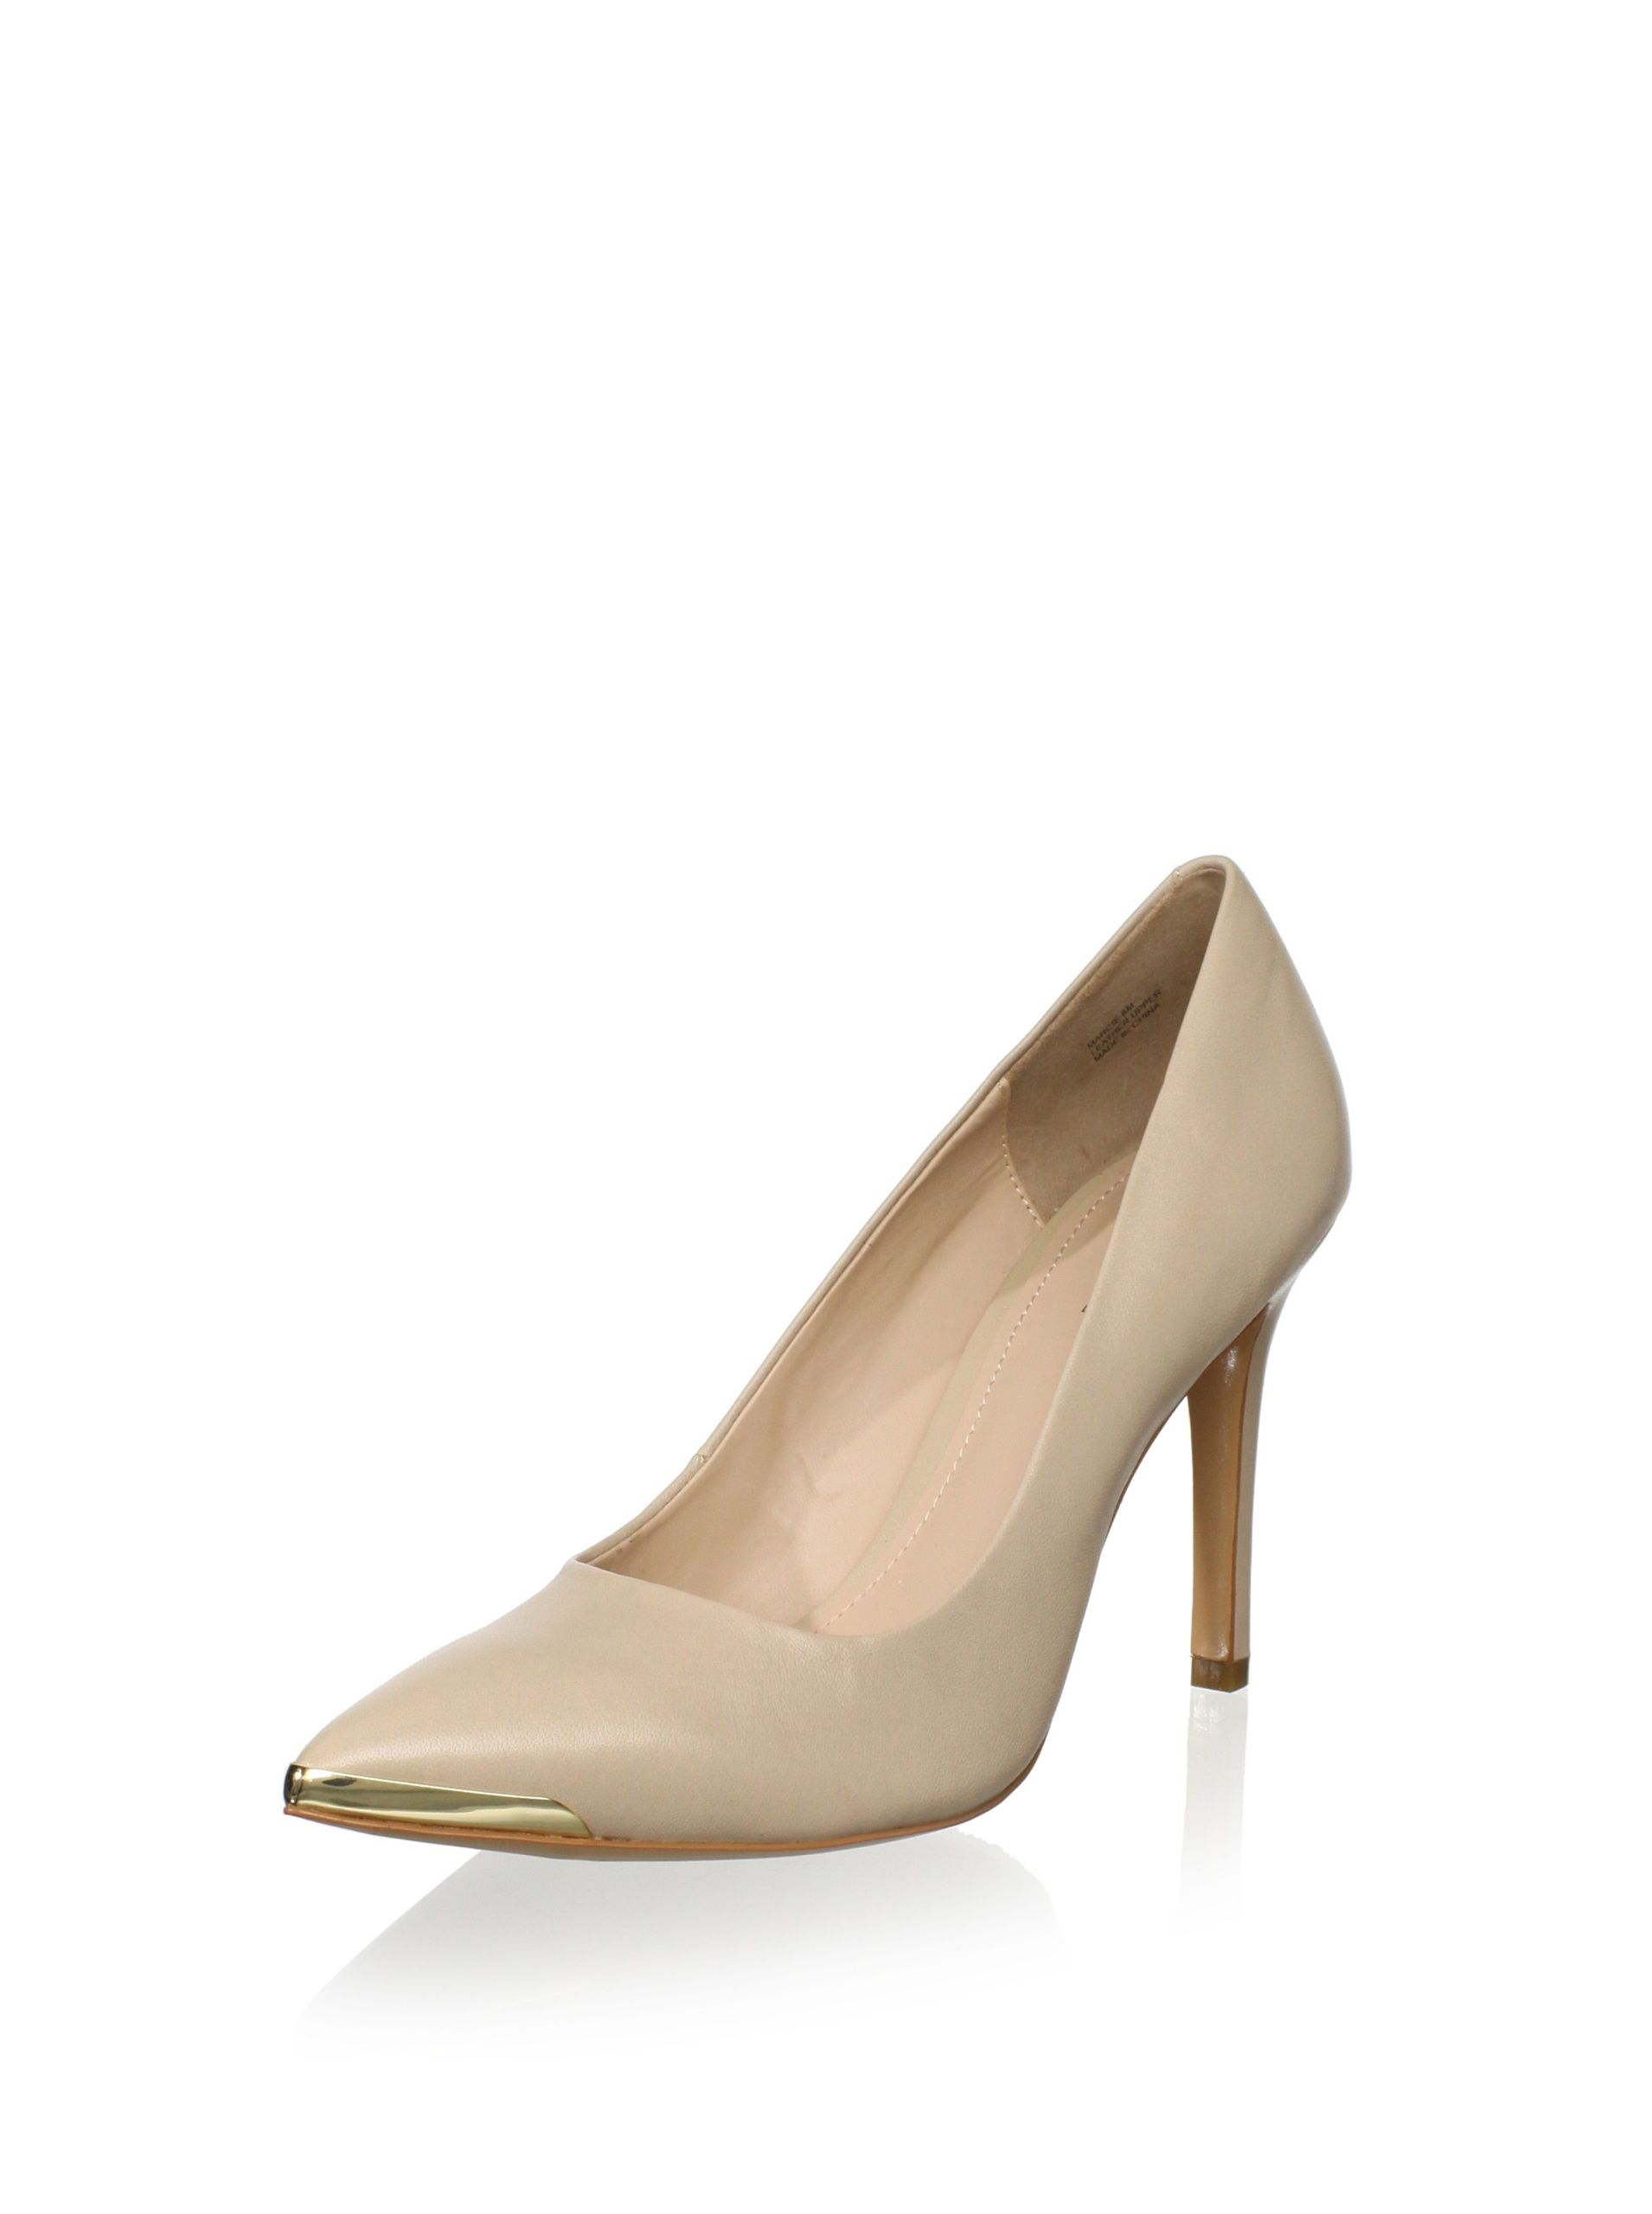 2f72b7163c Pour La Victoire Women s Marcie Dress Pump (Plum) Classic streamlined  silhouette set apart from the rest with a metallic touch at pointed toe